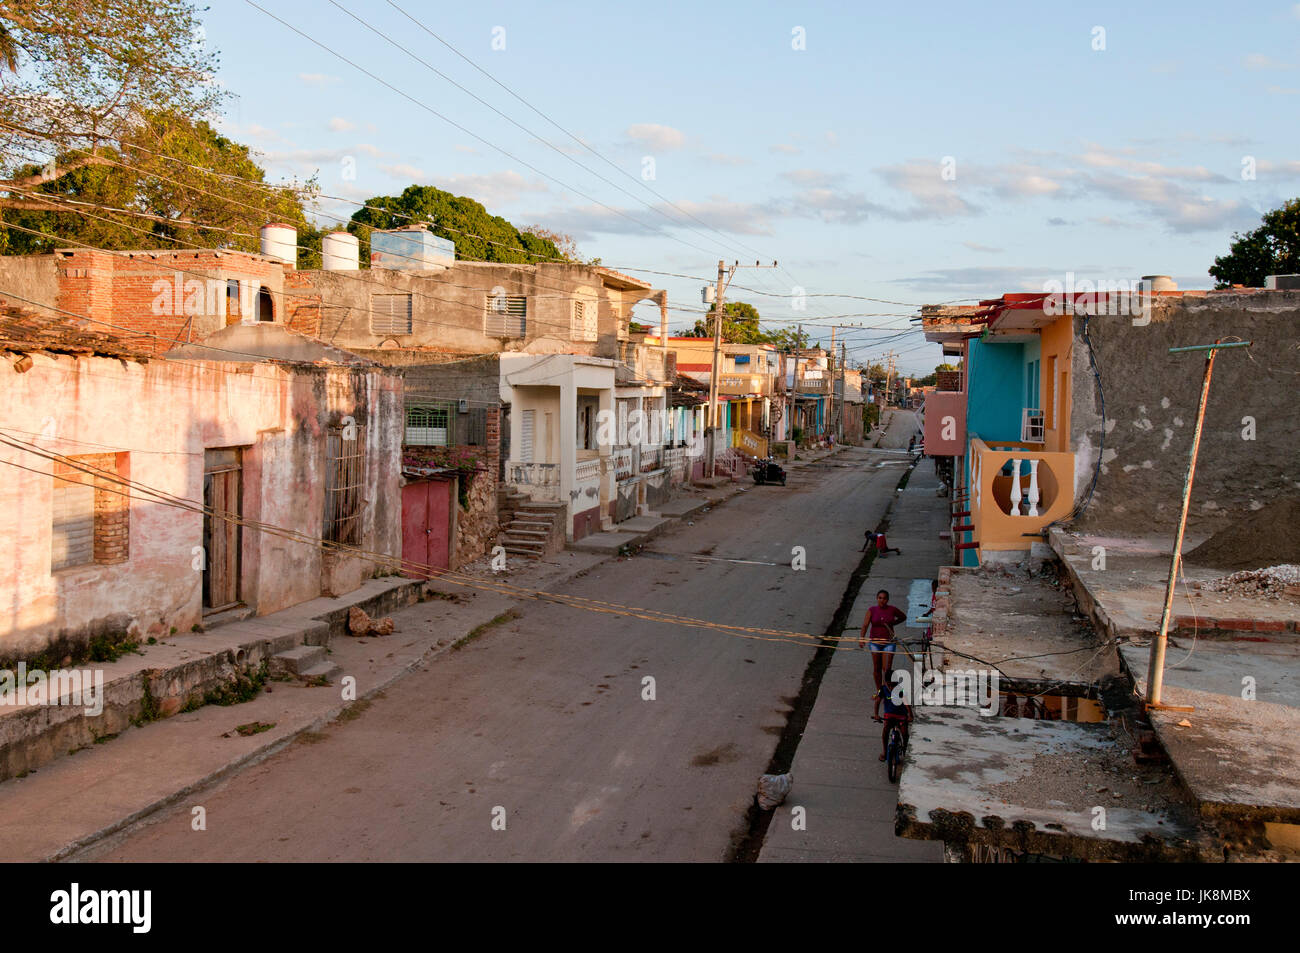 run-down section of Trinidad Cuba - Stock Image